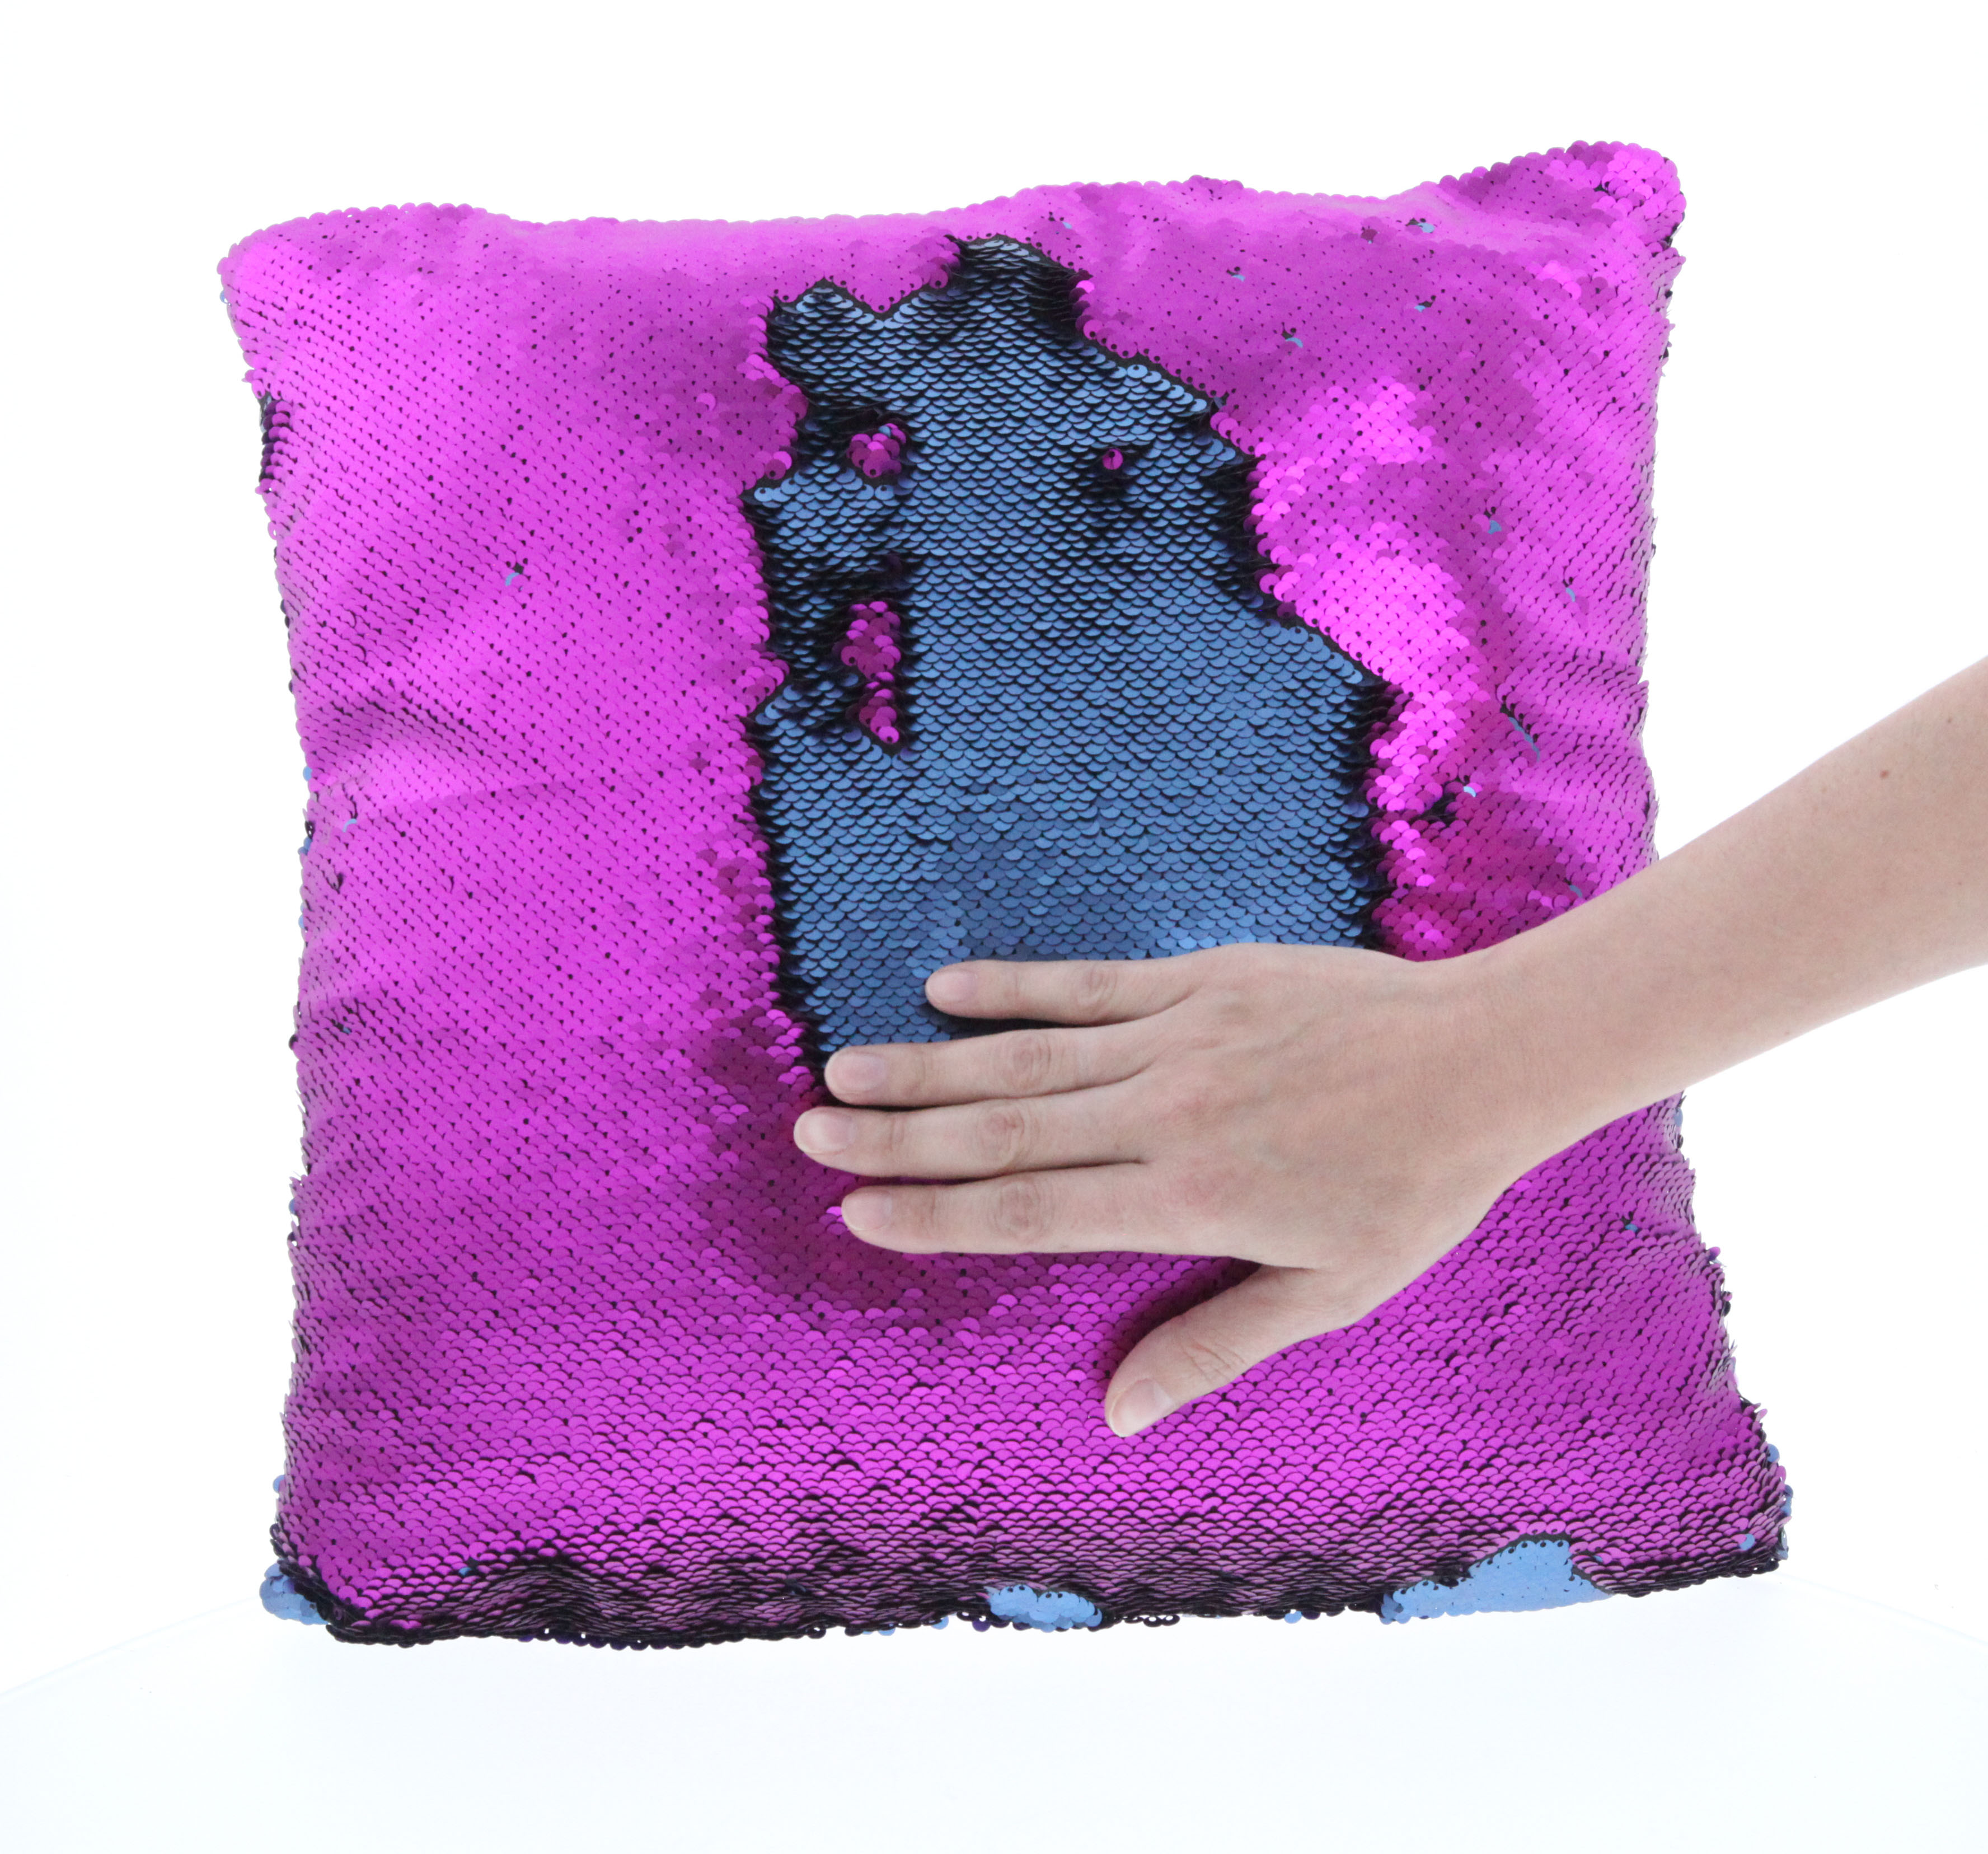 Sensory Vibrating Pillow with Knobs by